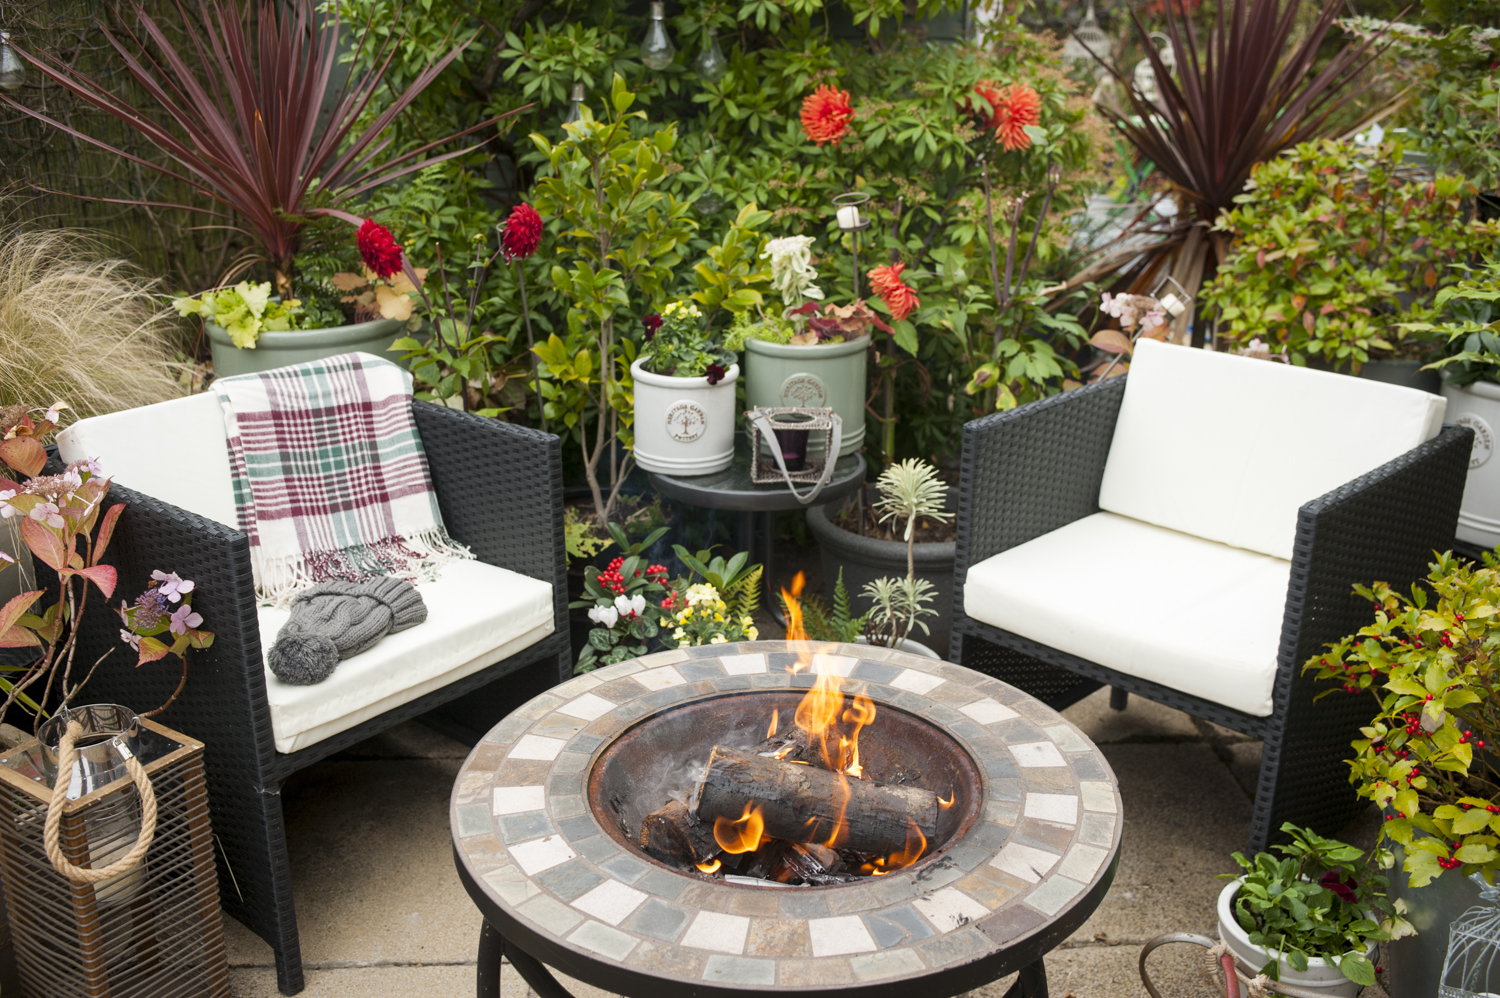 pots-and-pateriors-winter-garden-patio-woodburner-firepit-plants-pots-edinburgh-chairs-furniture-coffee-table.JPG